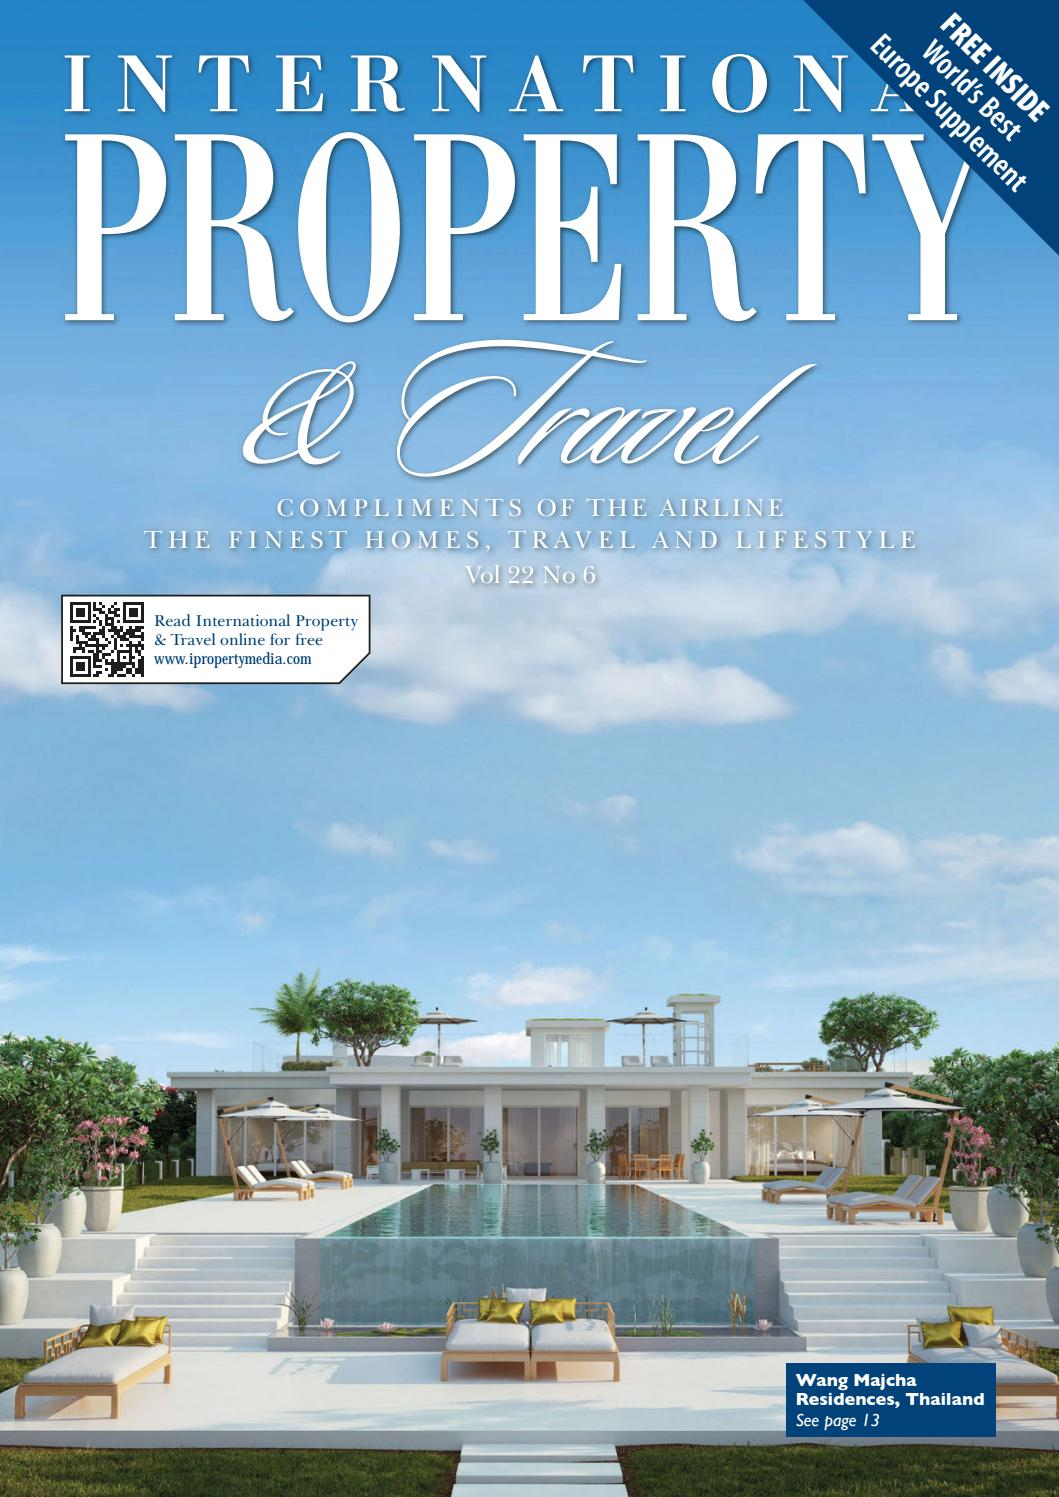 International Property Travel Volume 22 Number 6 By